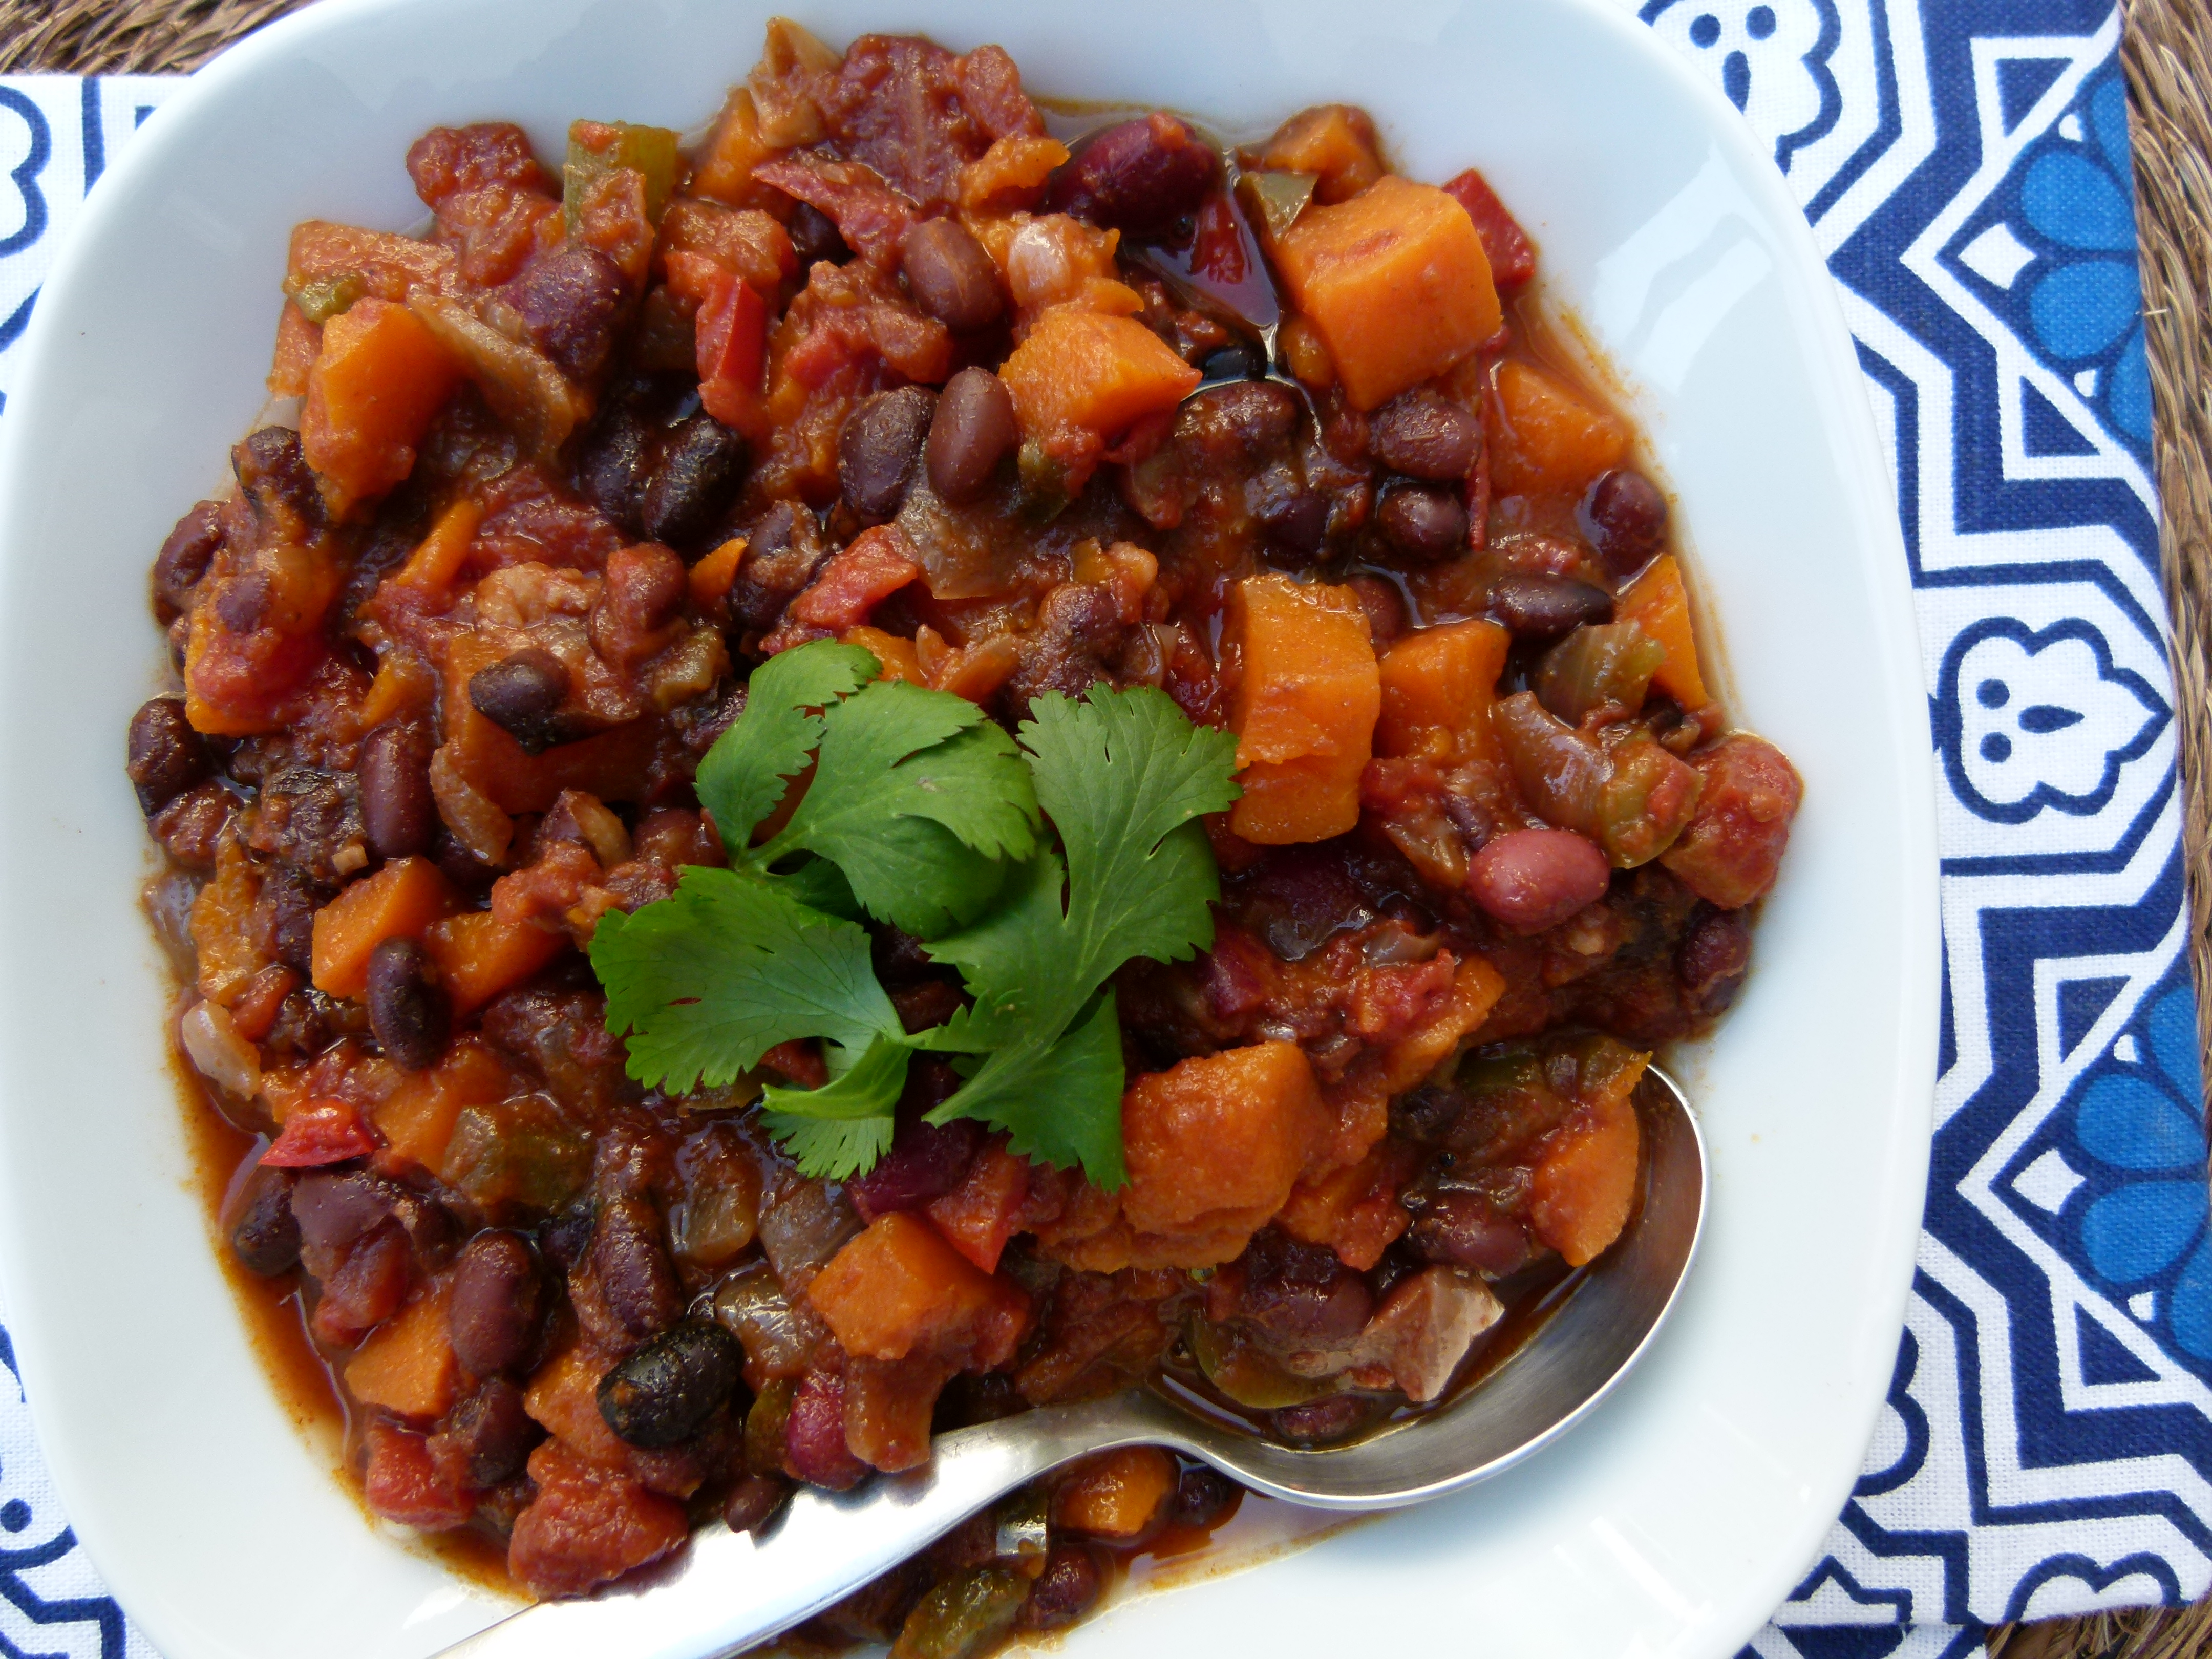 Slow Cooker Vegetarian Chili With Sweet Potatoes Stovetop Version Too